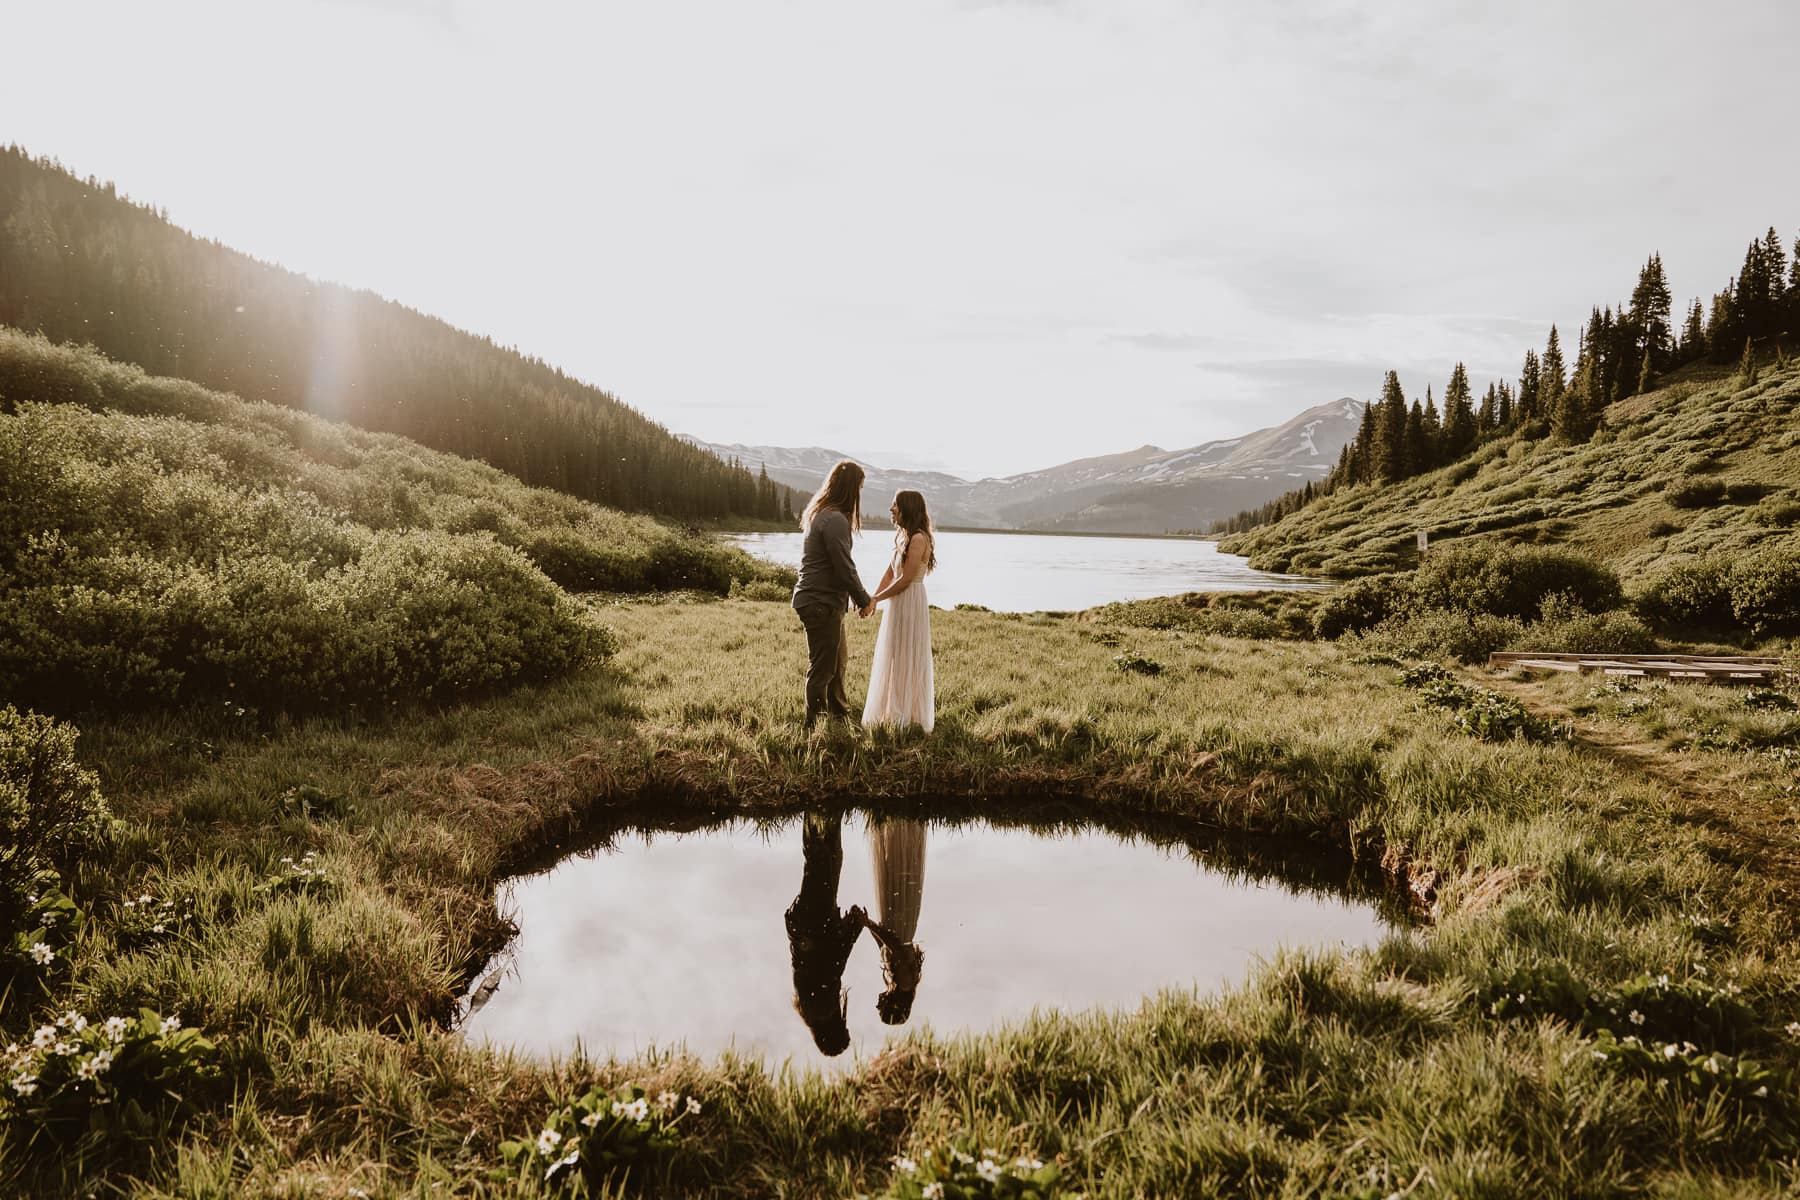 Magical places like this exist. This is why I make it my mission to find the best places for couples to elope in Colorado!